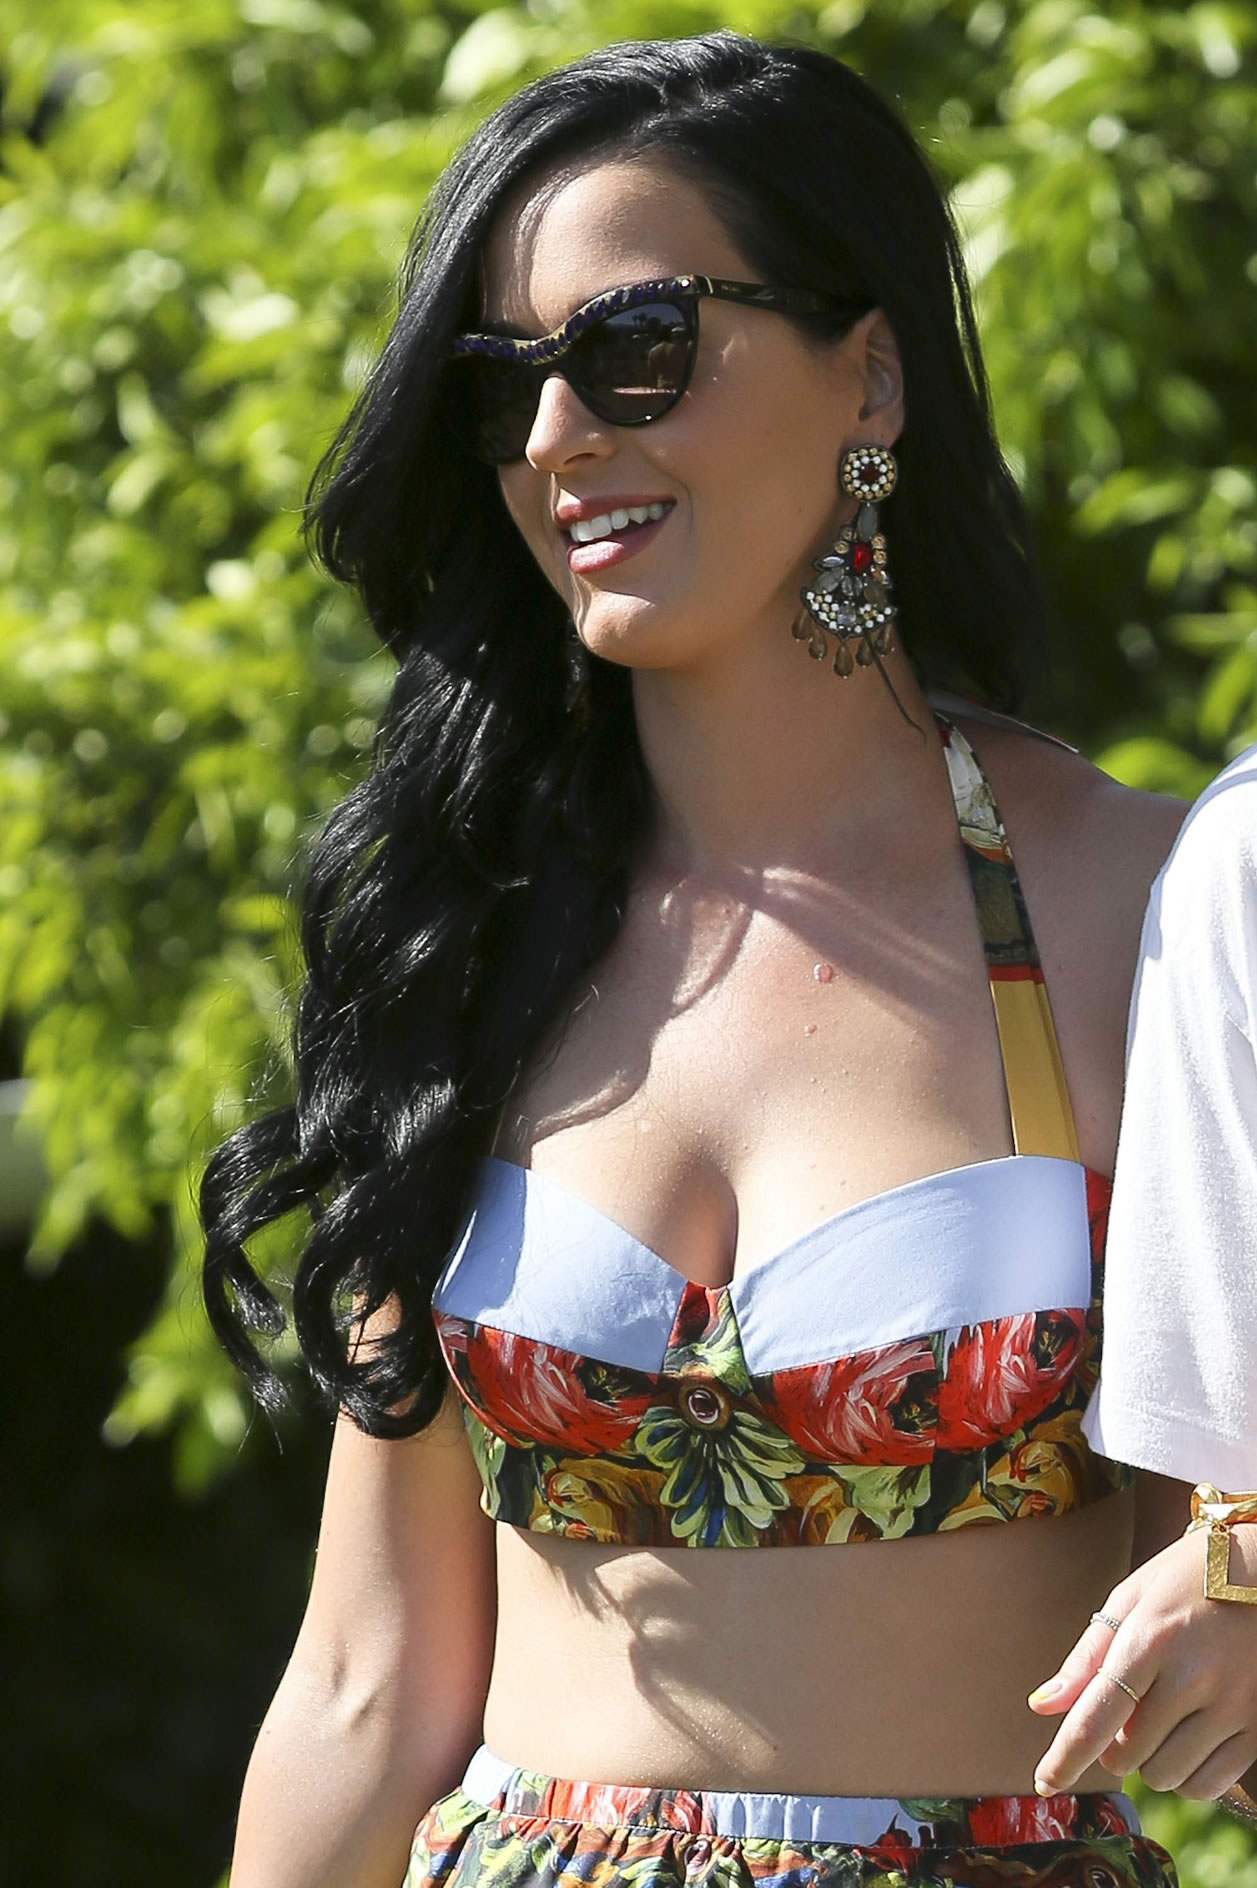 katy-perry-cat-eye-sunglasses